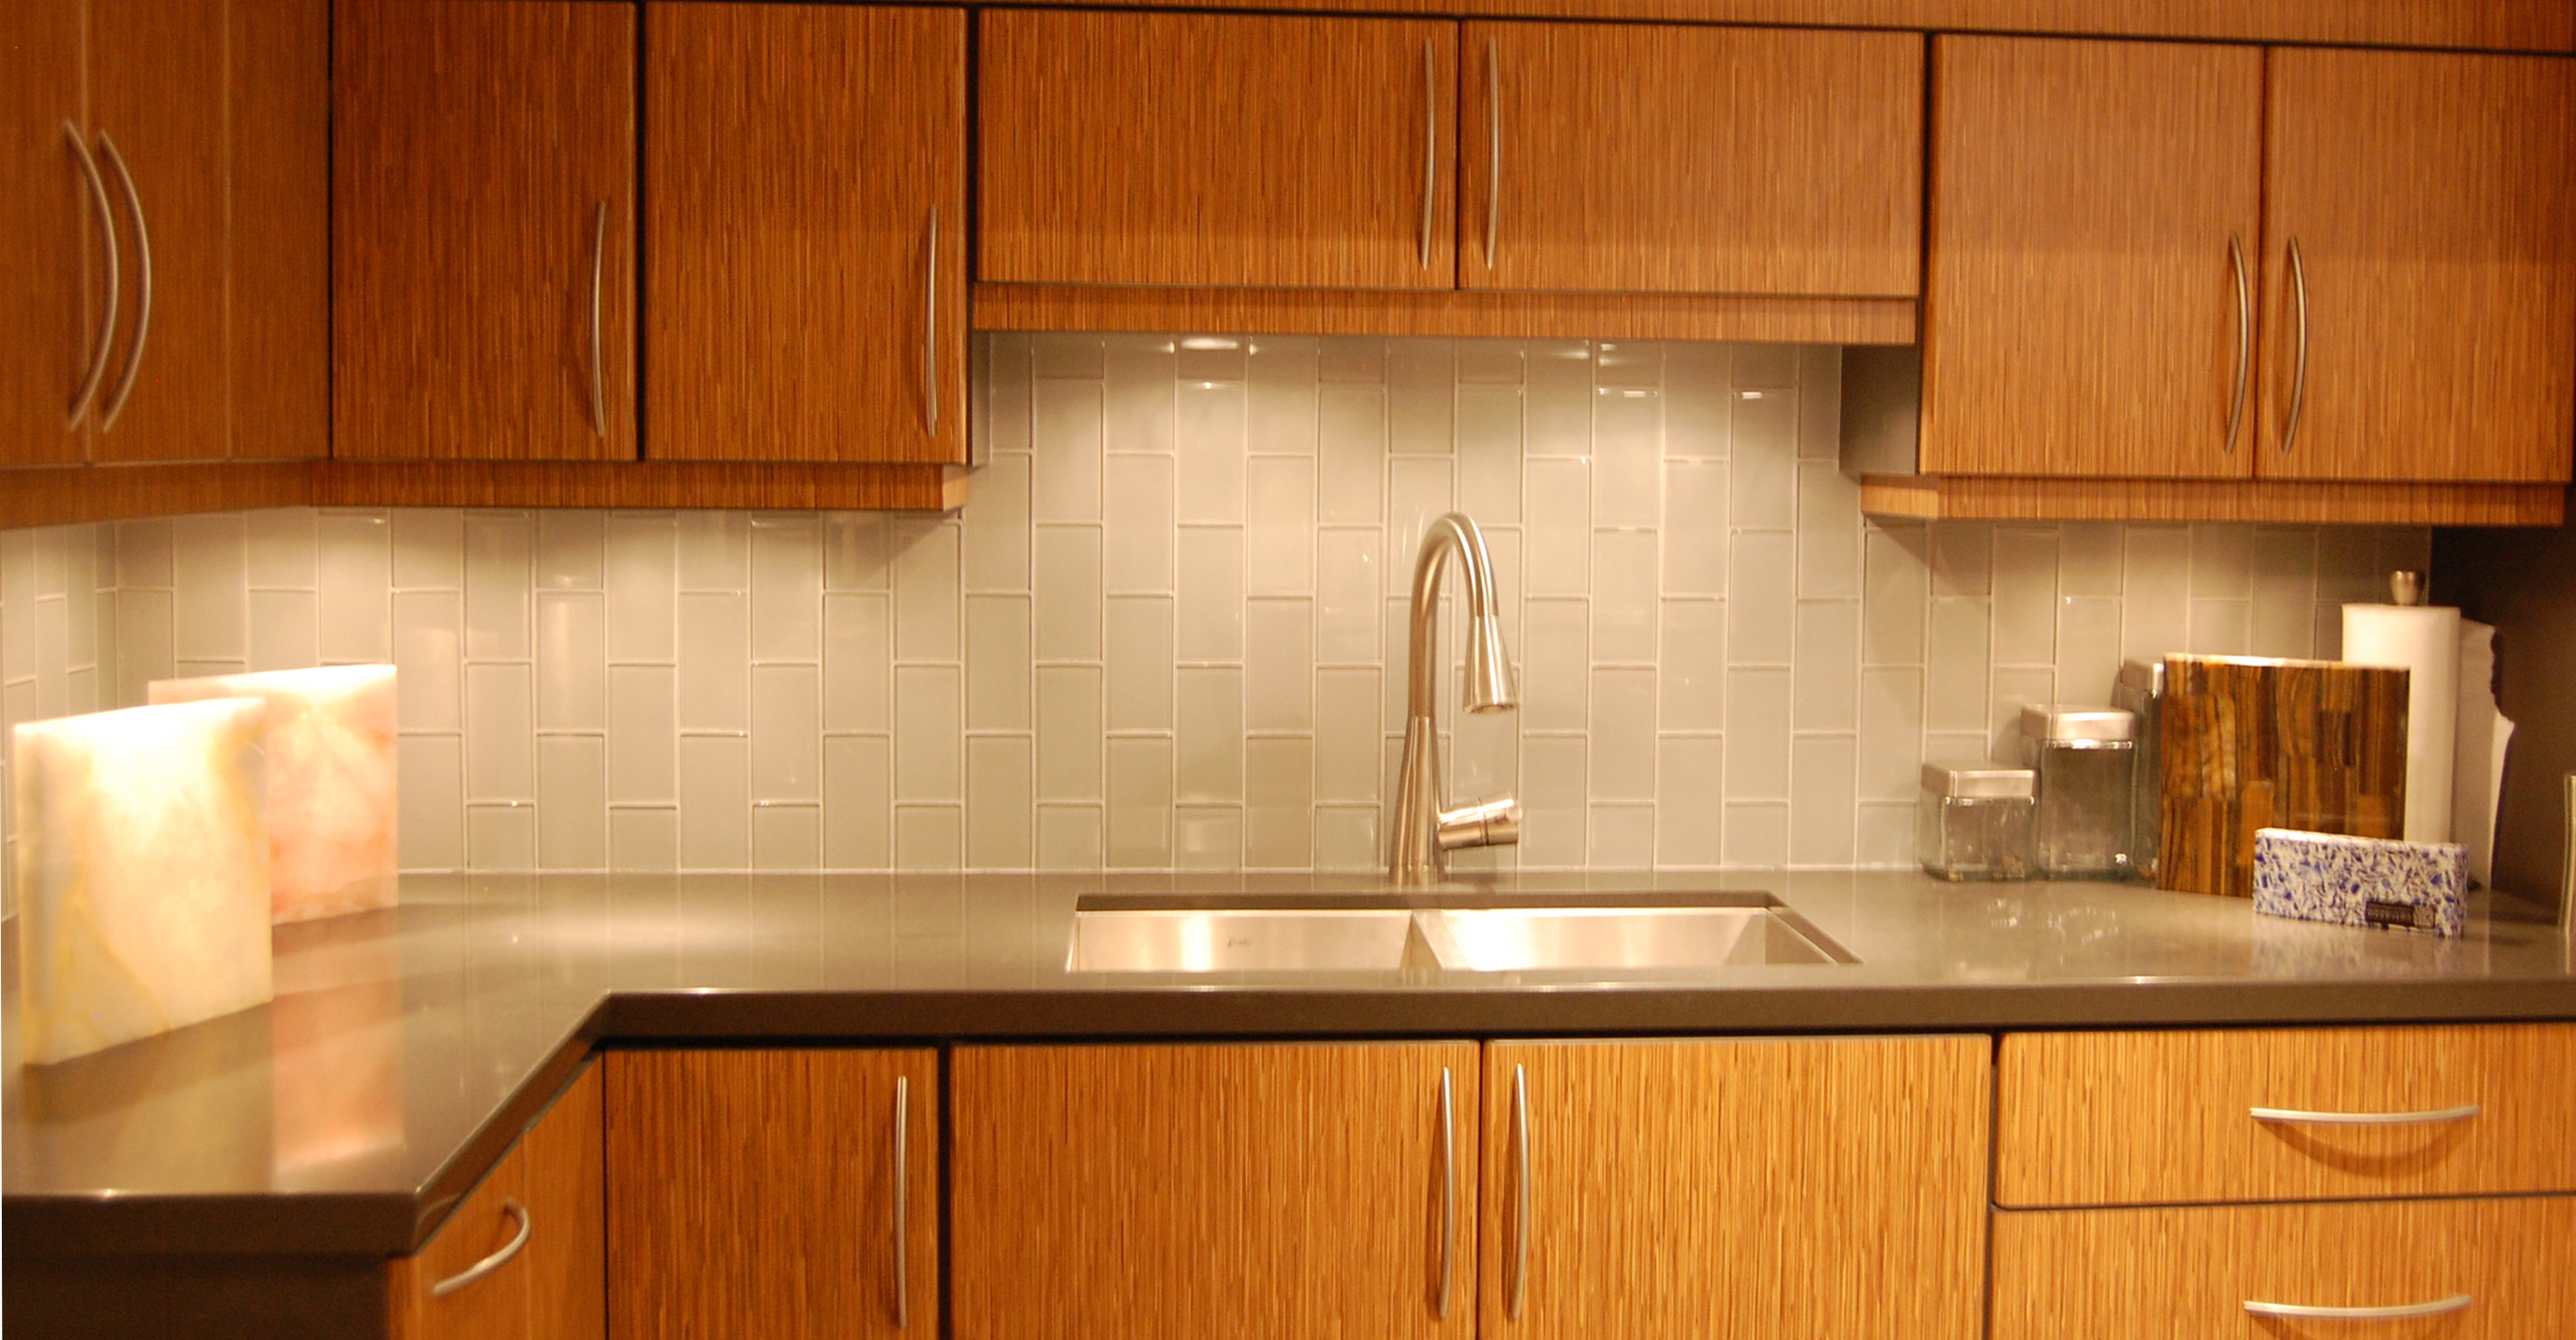 kitchen renovation, kitchen backsplash installation